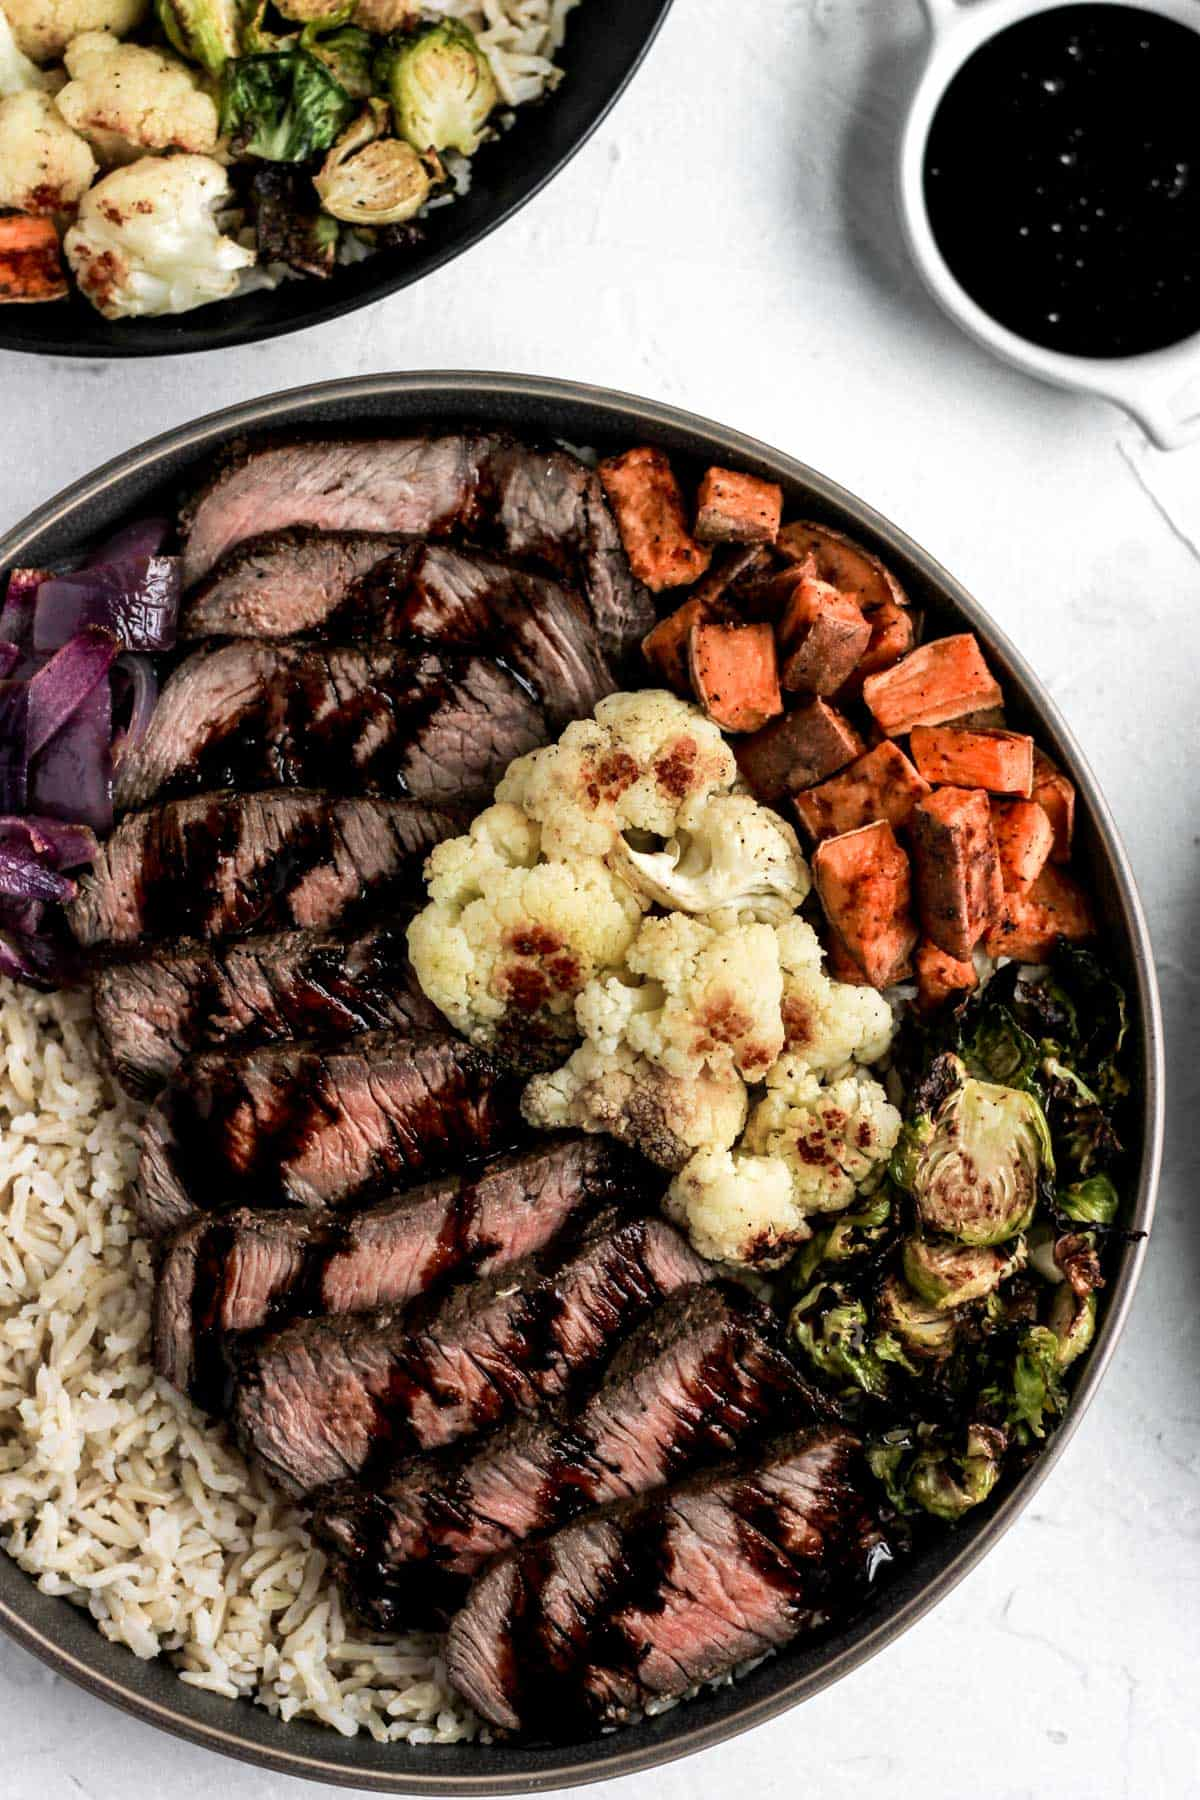 Glazed balsamic steak and veggies over brown rice in a dark gray bowl with a side of balsamic reduction.